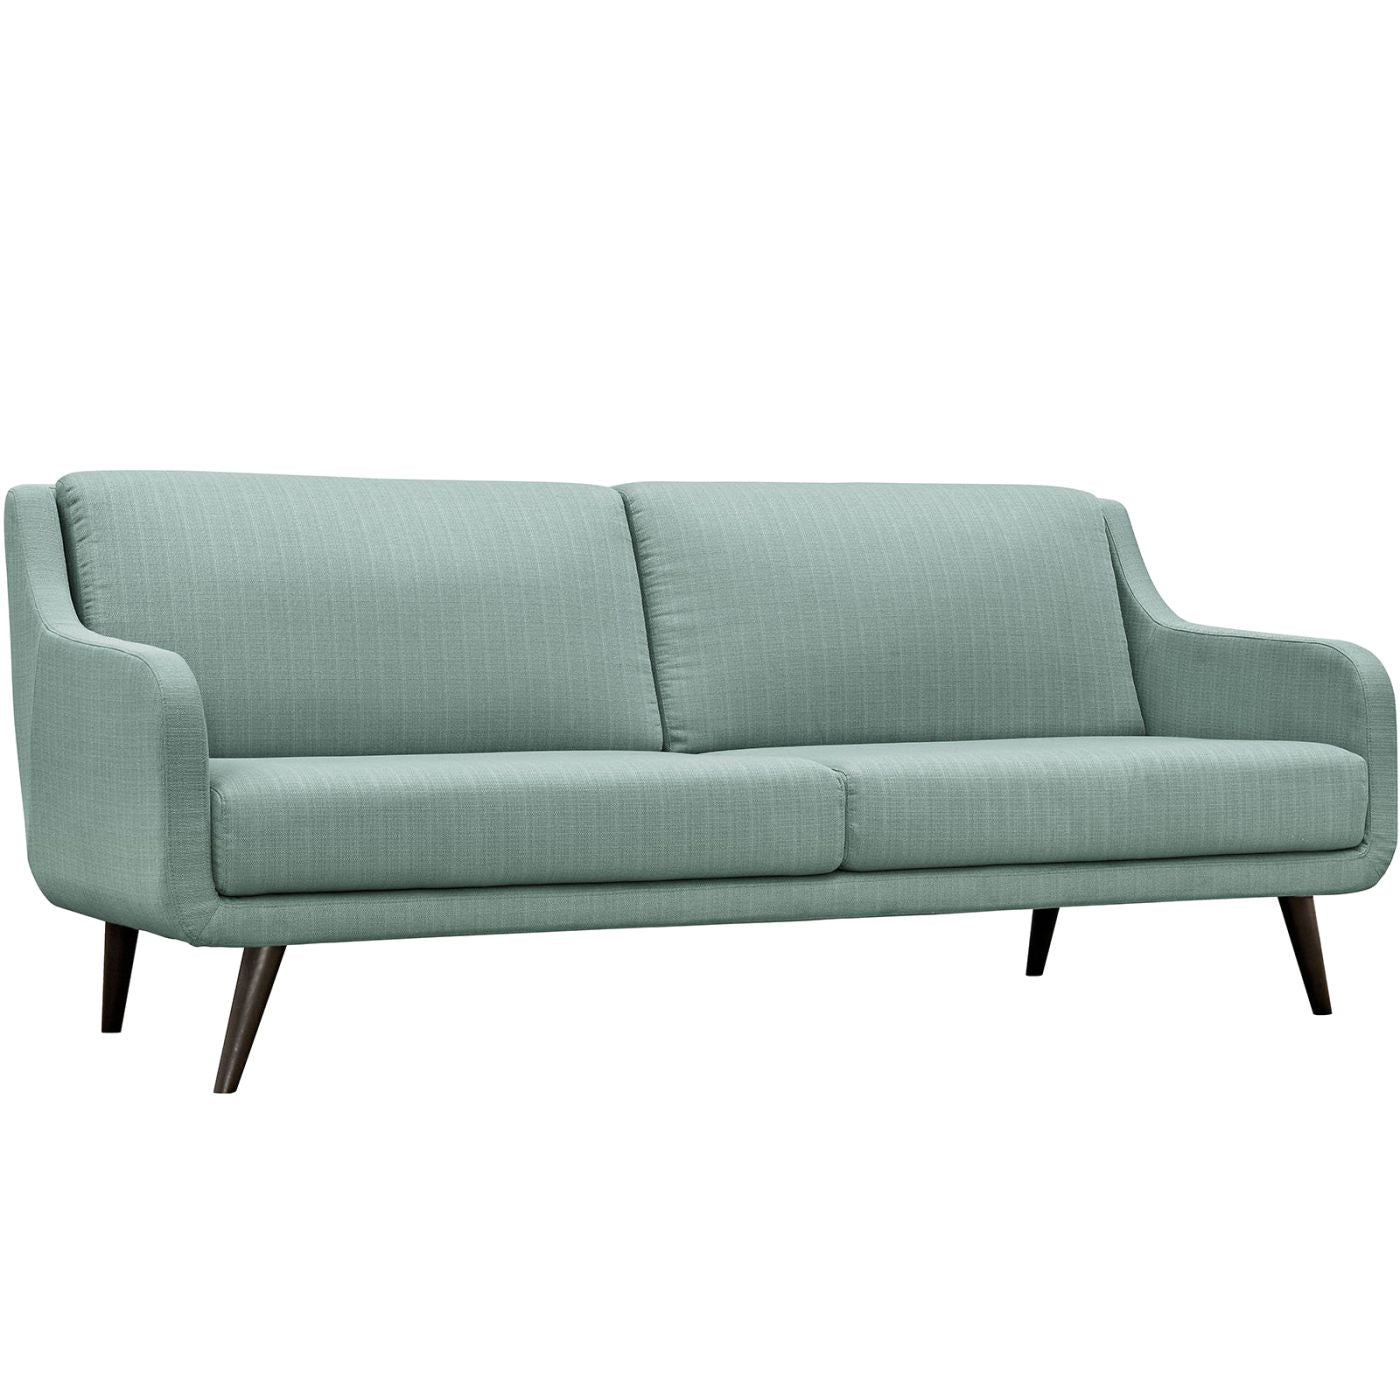 Modway Verve Upholstered Sofa Eei 2129 Lgr Only At Contemporary Furniture Warehouse